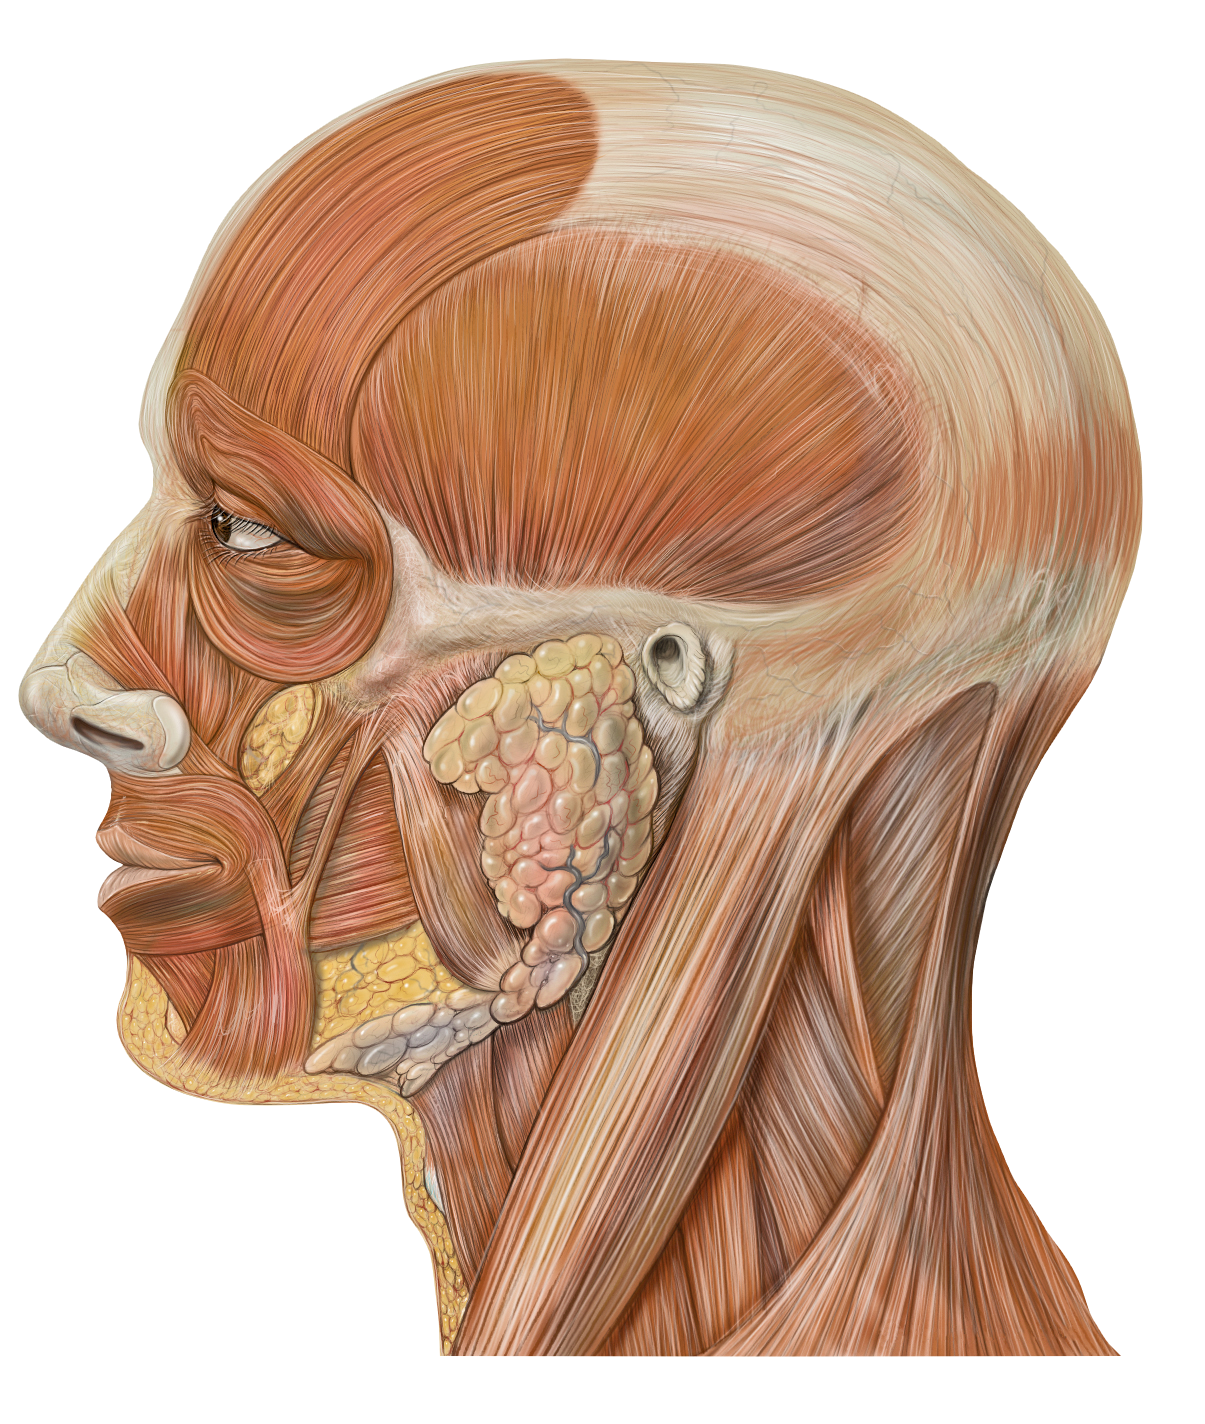 Anatomy Png - File:Lateral head anatomy.png - Wikimedia Commons